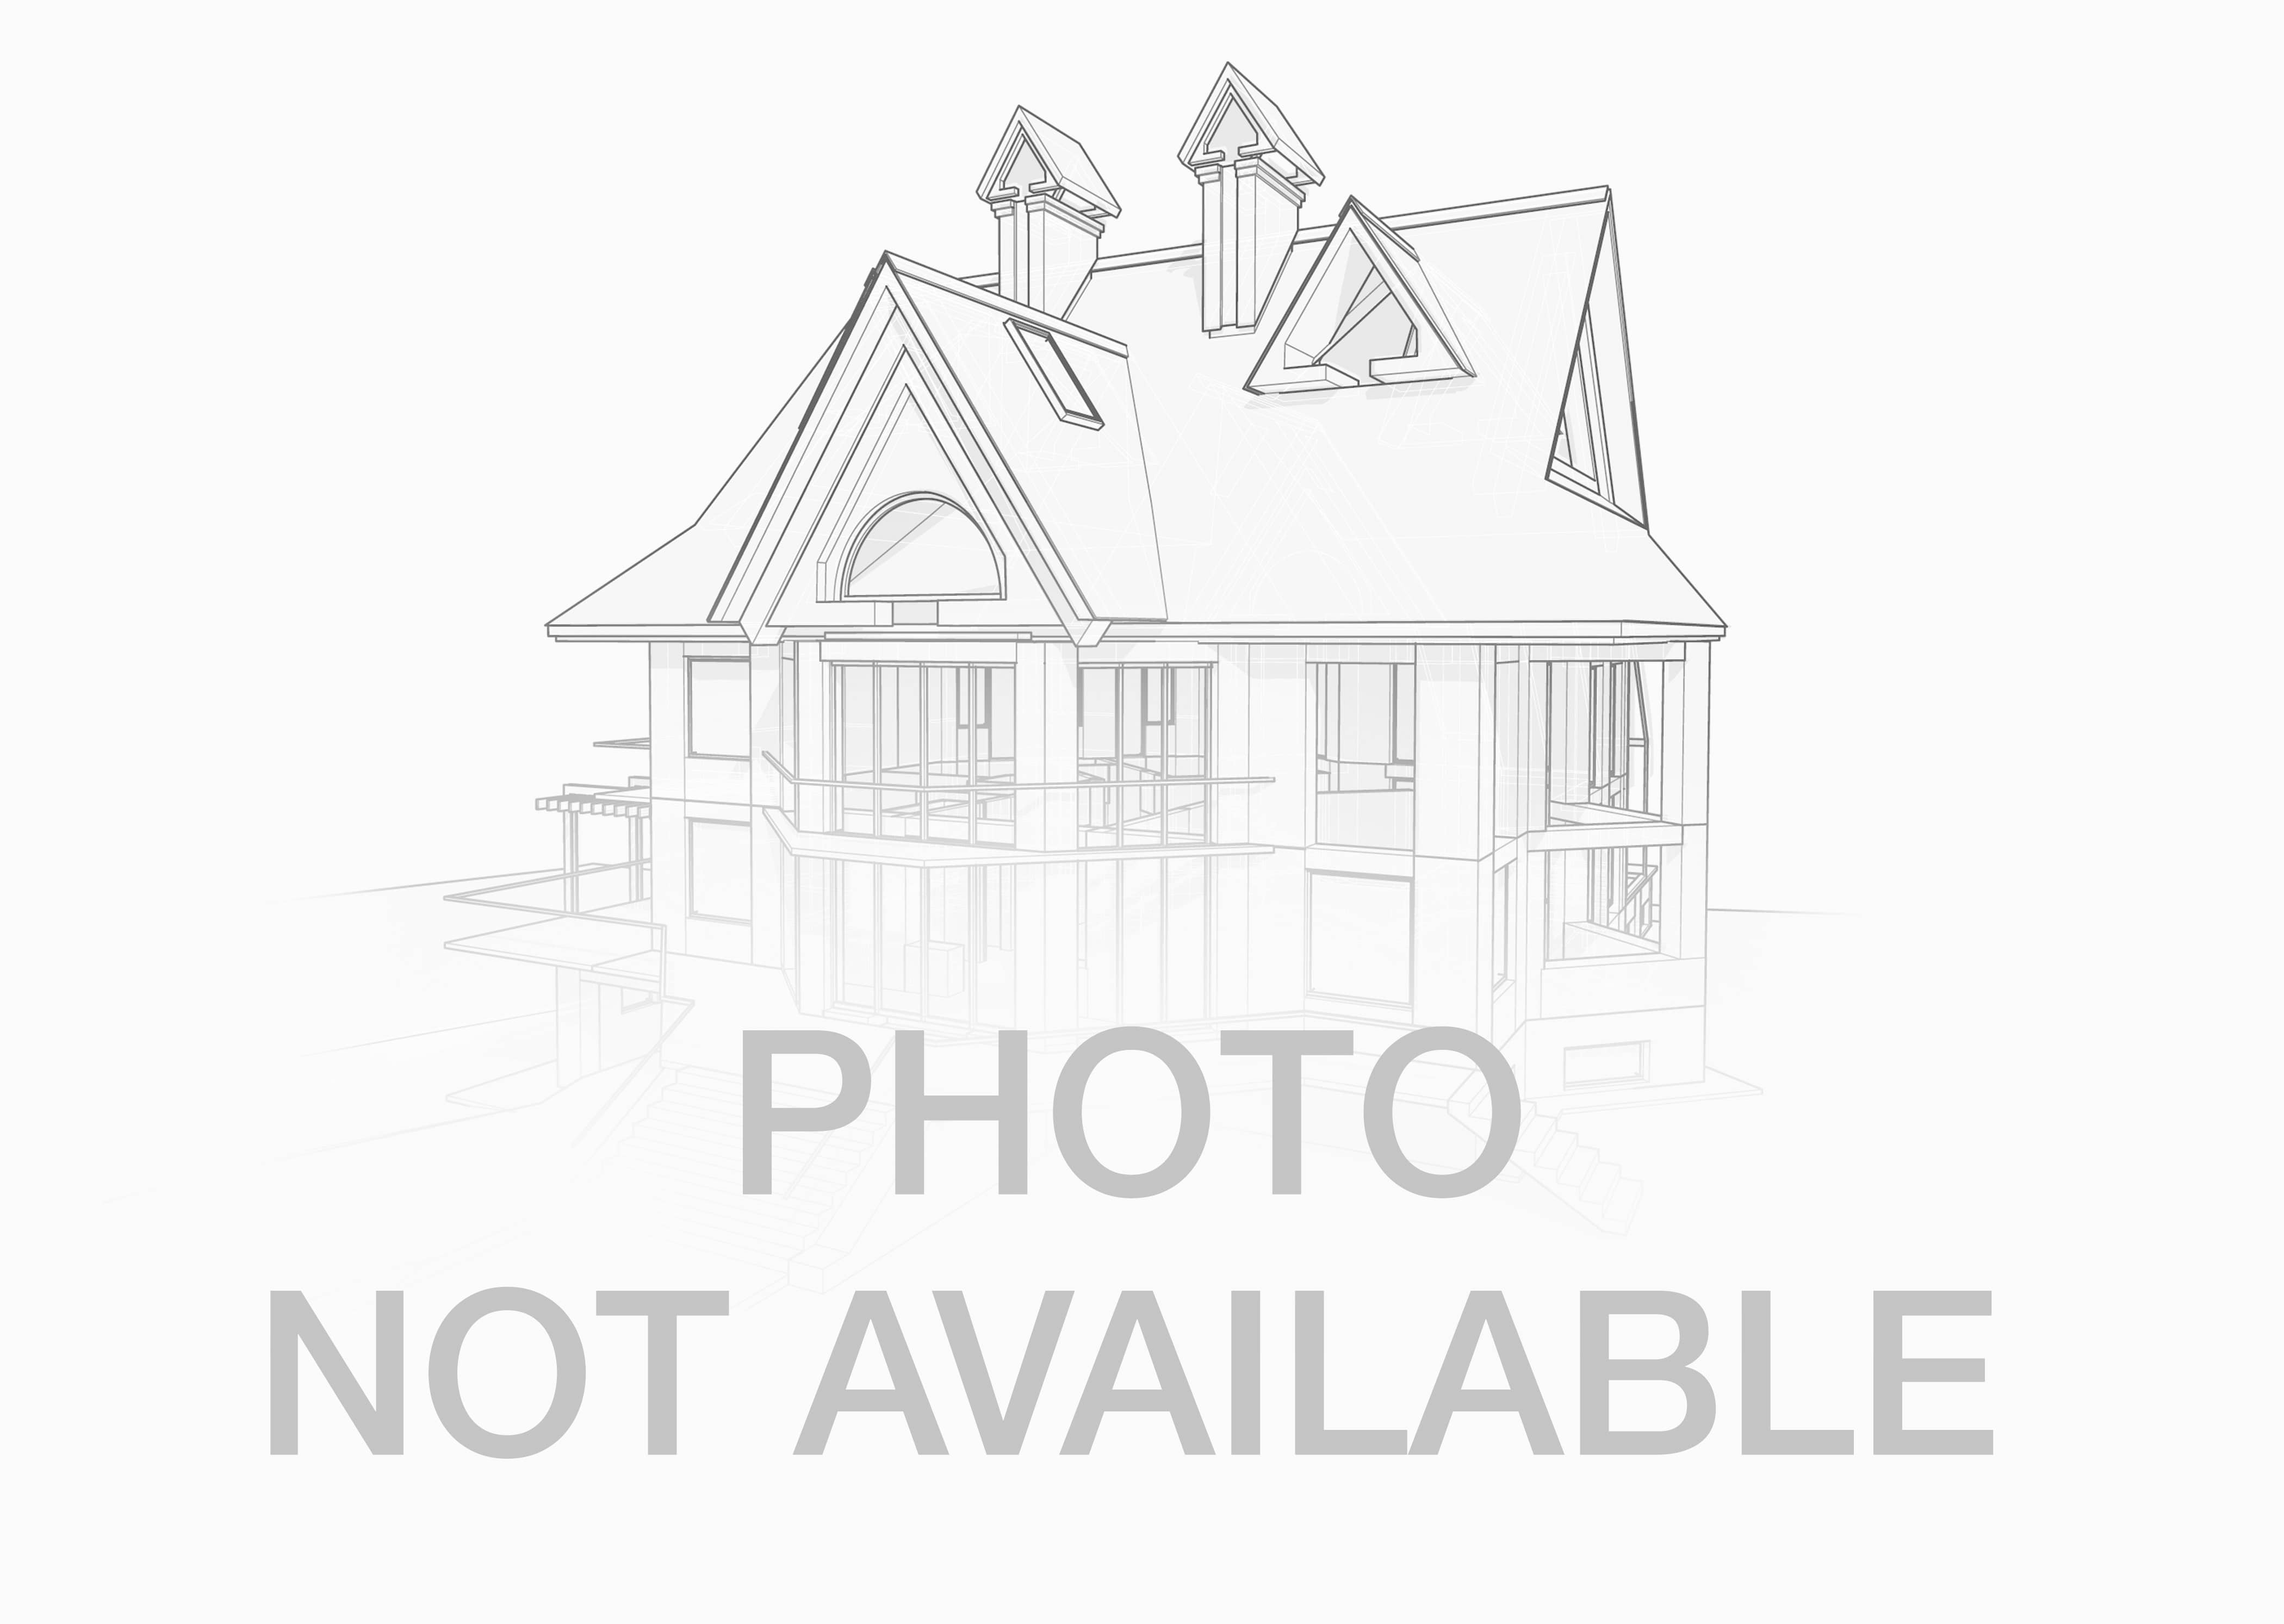 russlen farms va homes for sale and